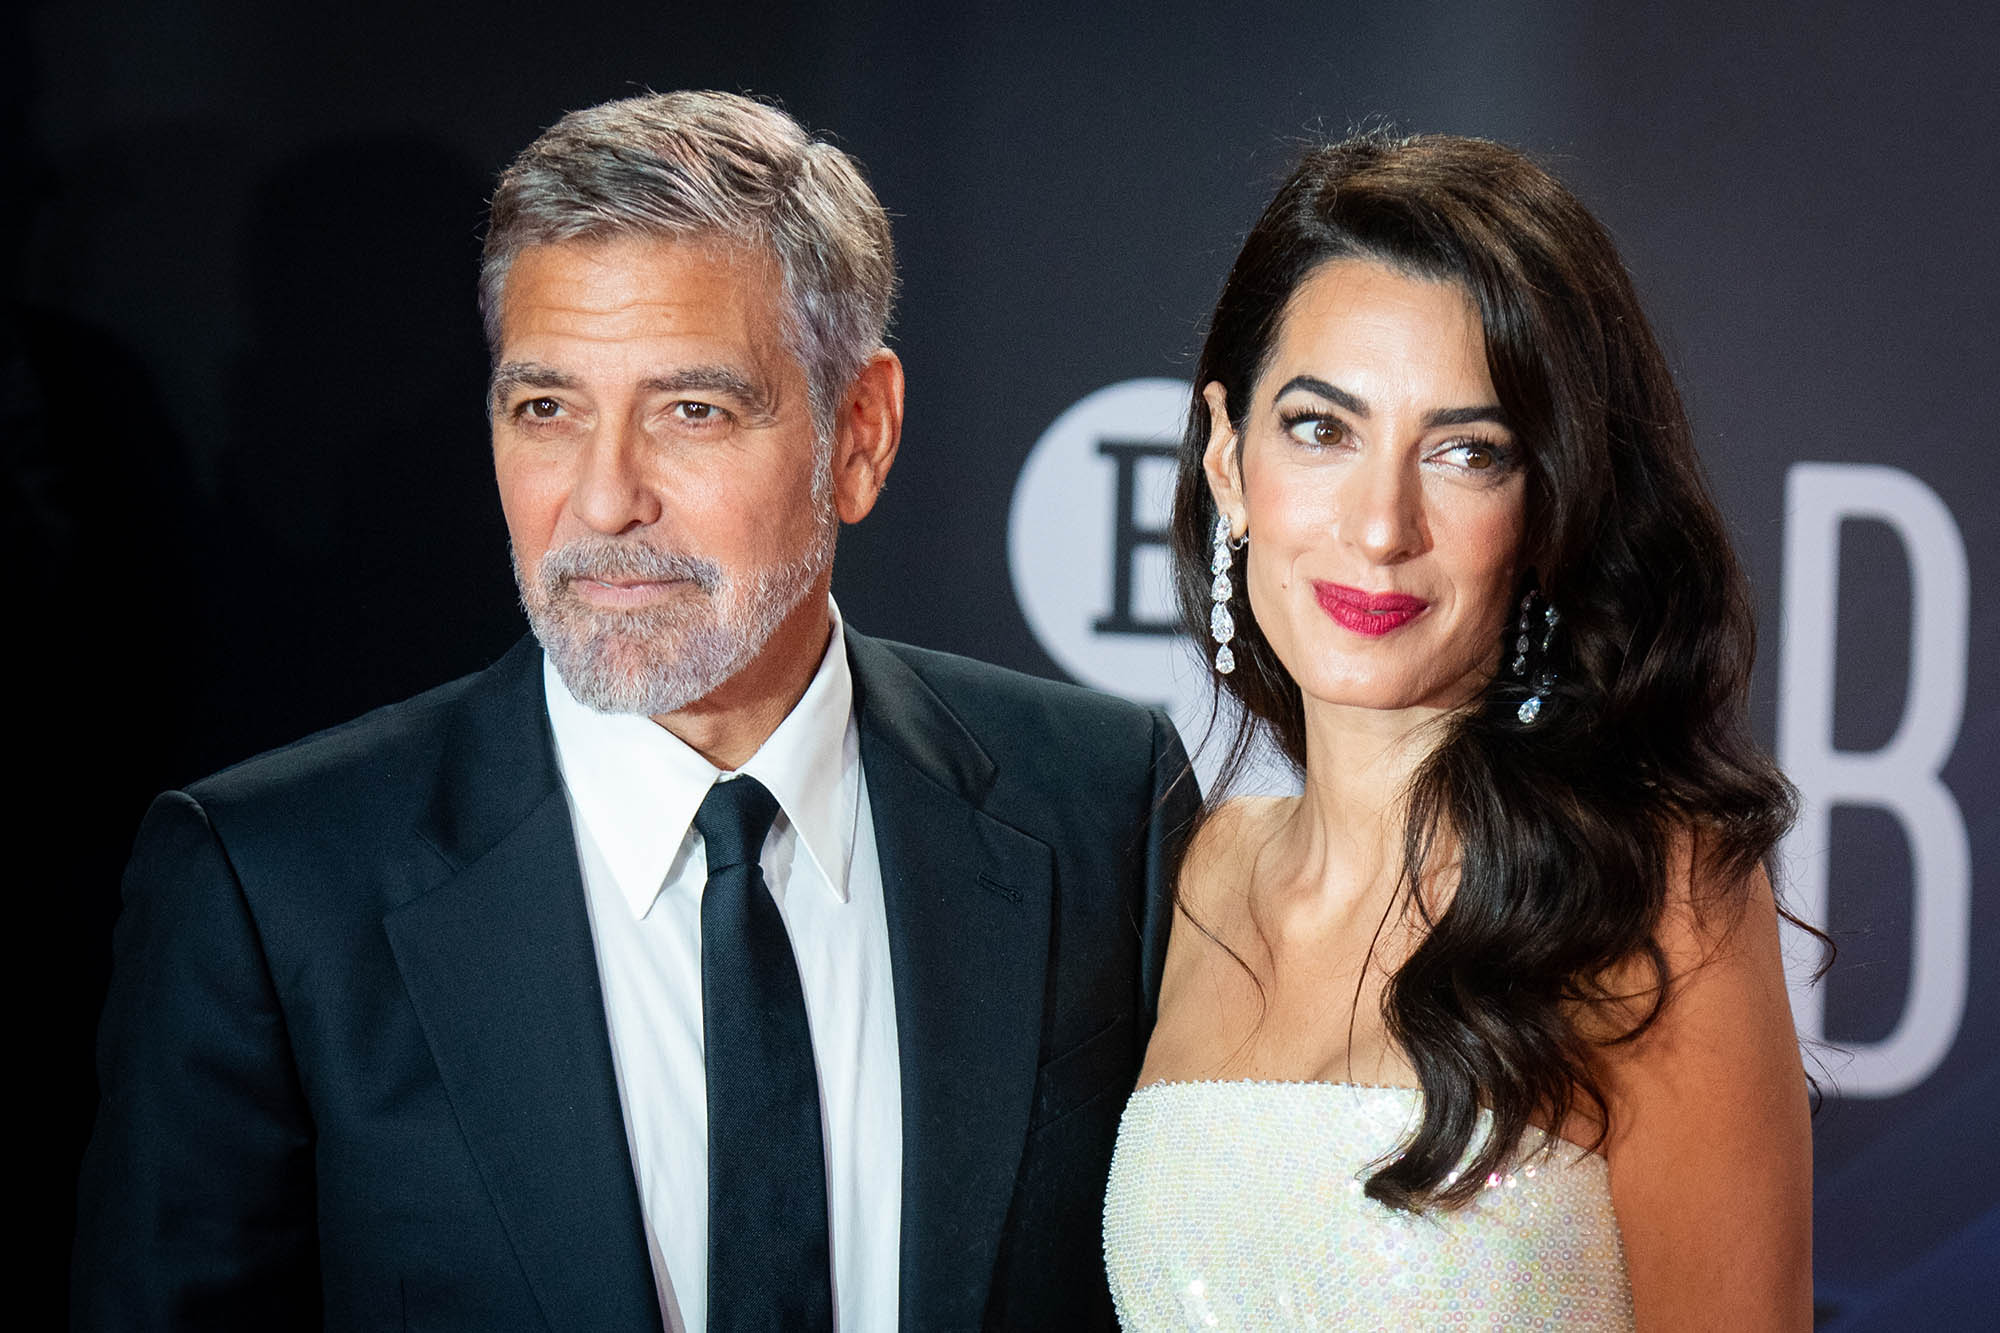 """Clooney says he wants to """"enjoy life"""" with his wife Amal as he gets older"""